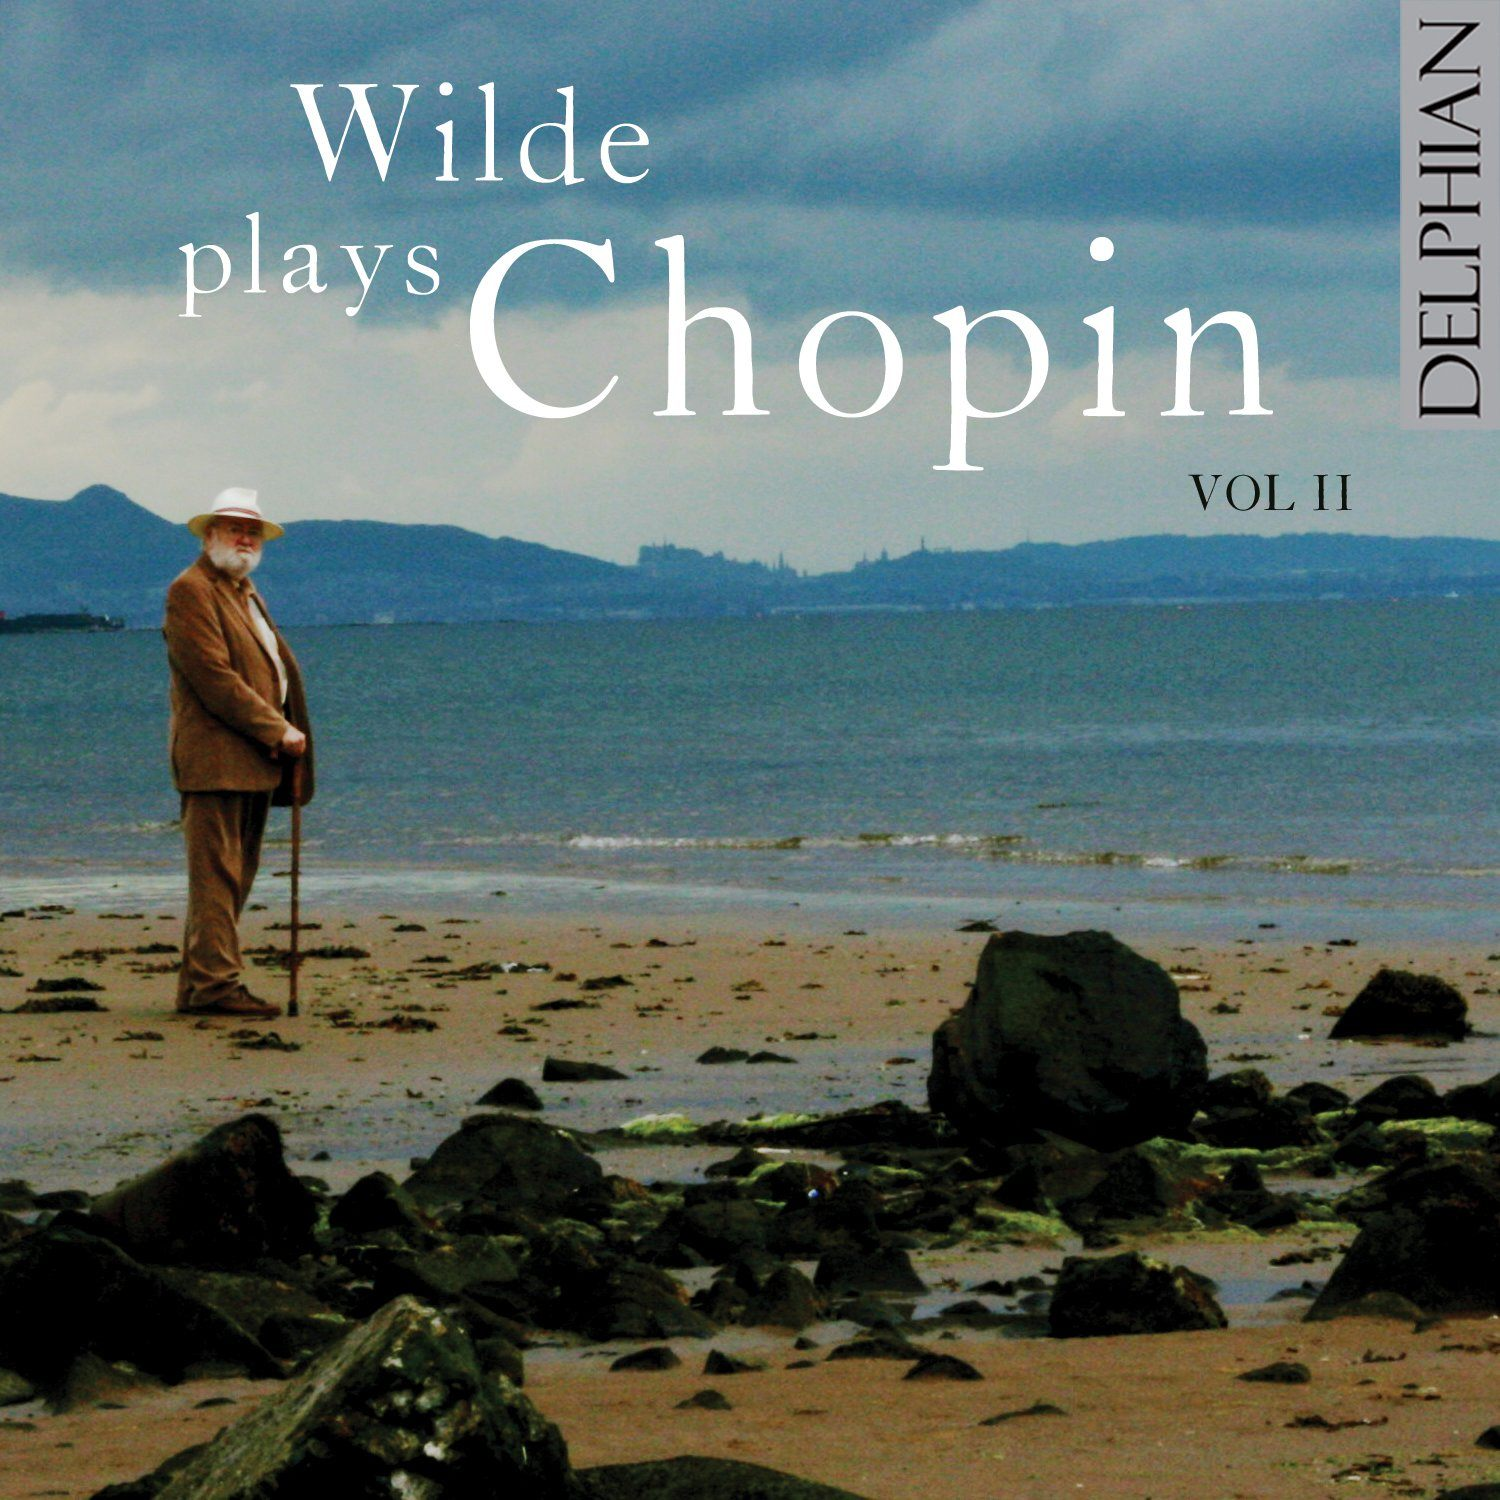 Wilde plays Chopin Vol II CD Delphian Records